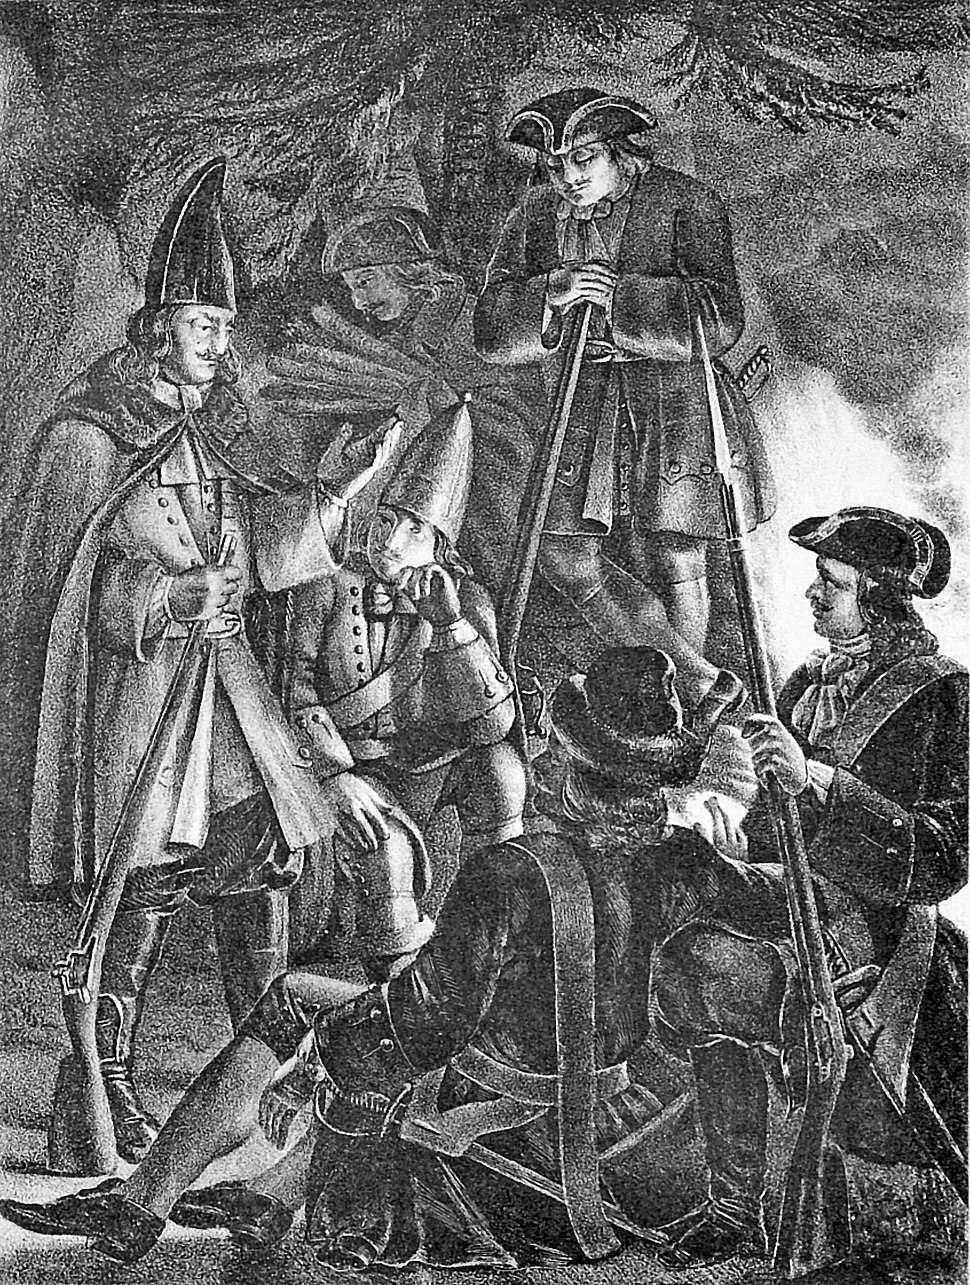 02 203 Book illustrations of Historical description of the clothes and weapons of Russian troops